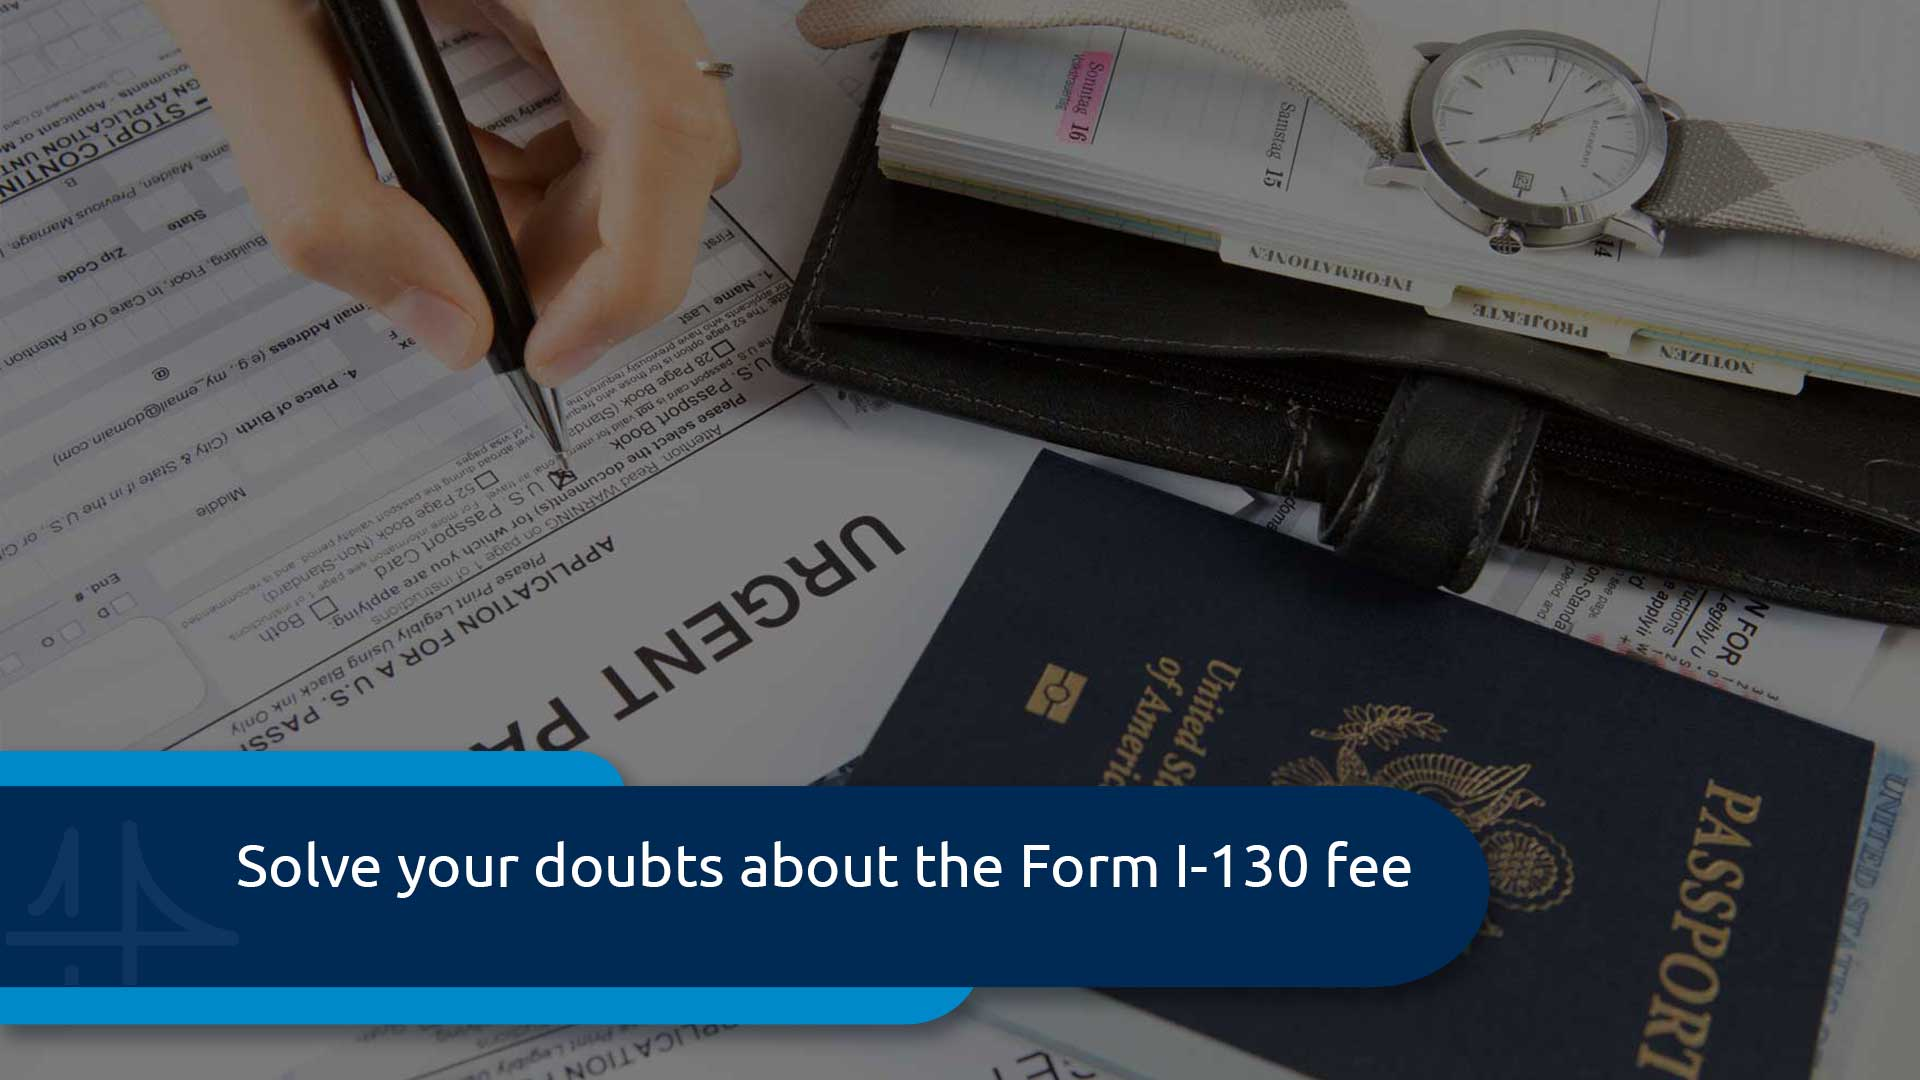 What is the form I-130 Fee?